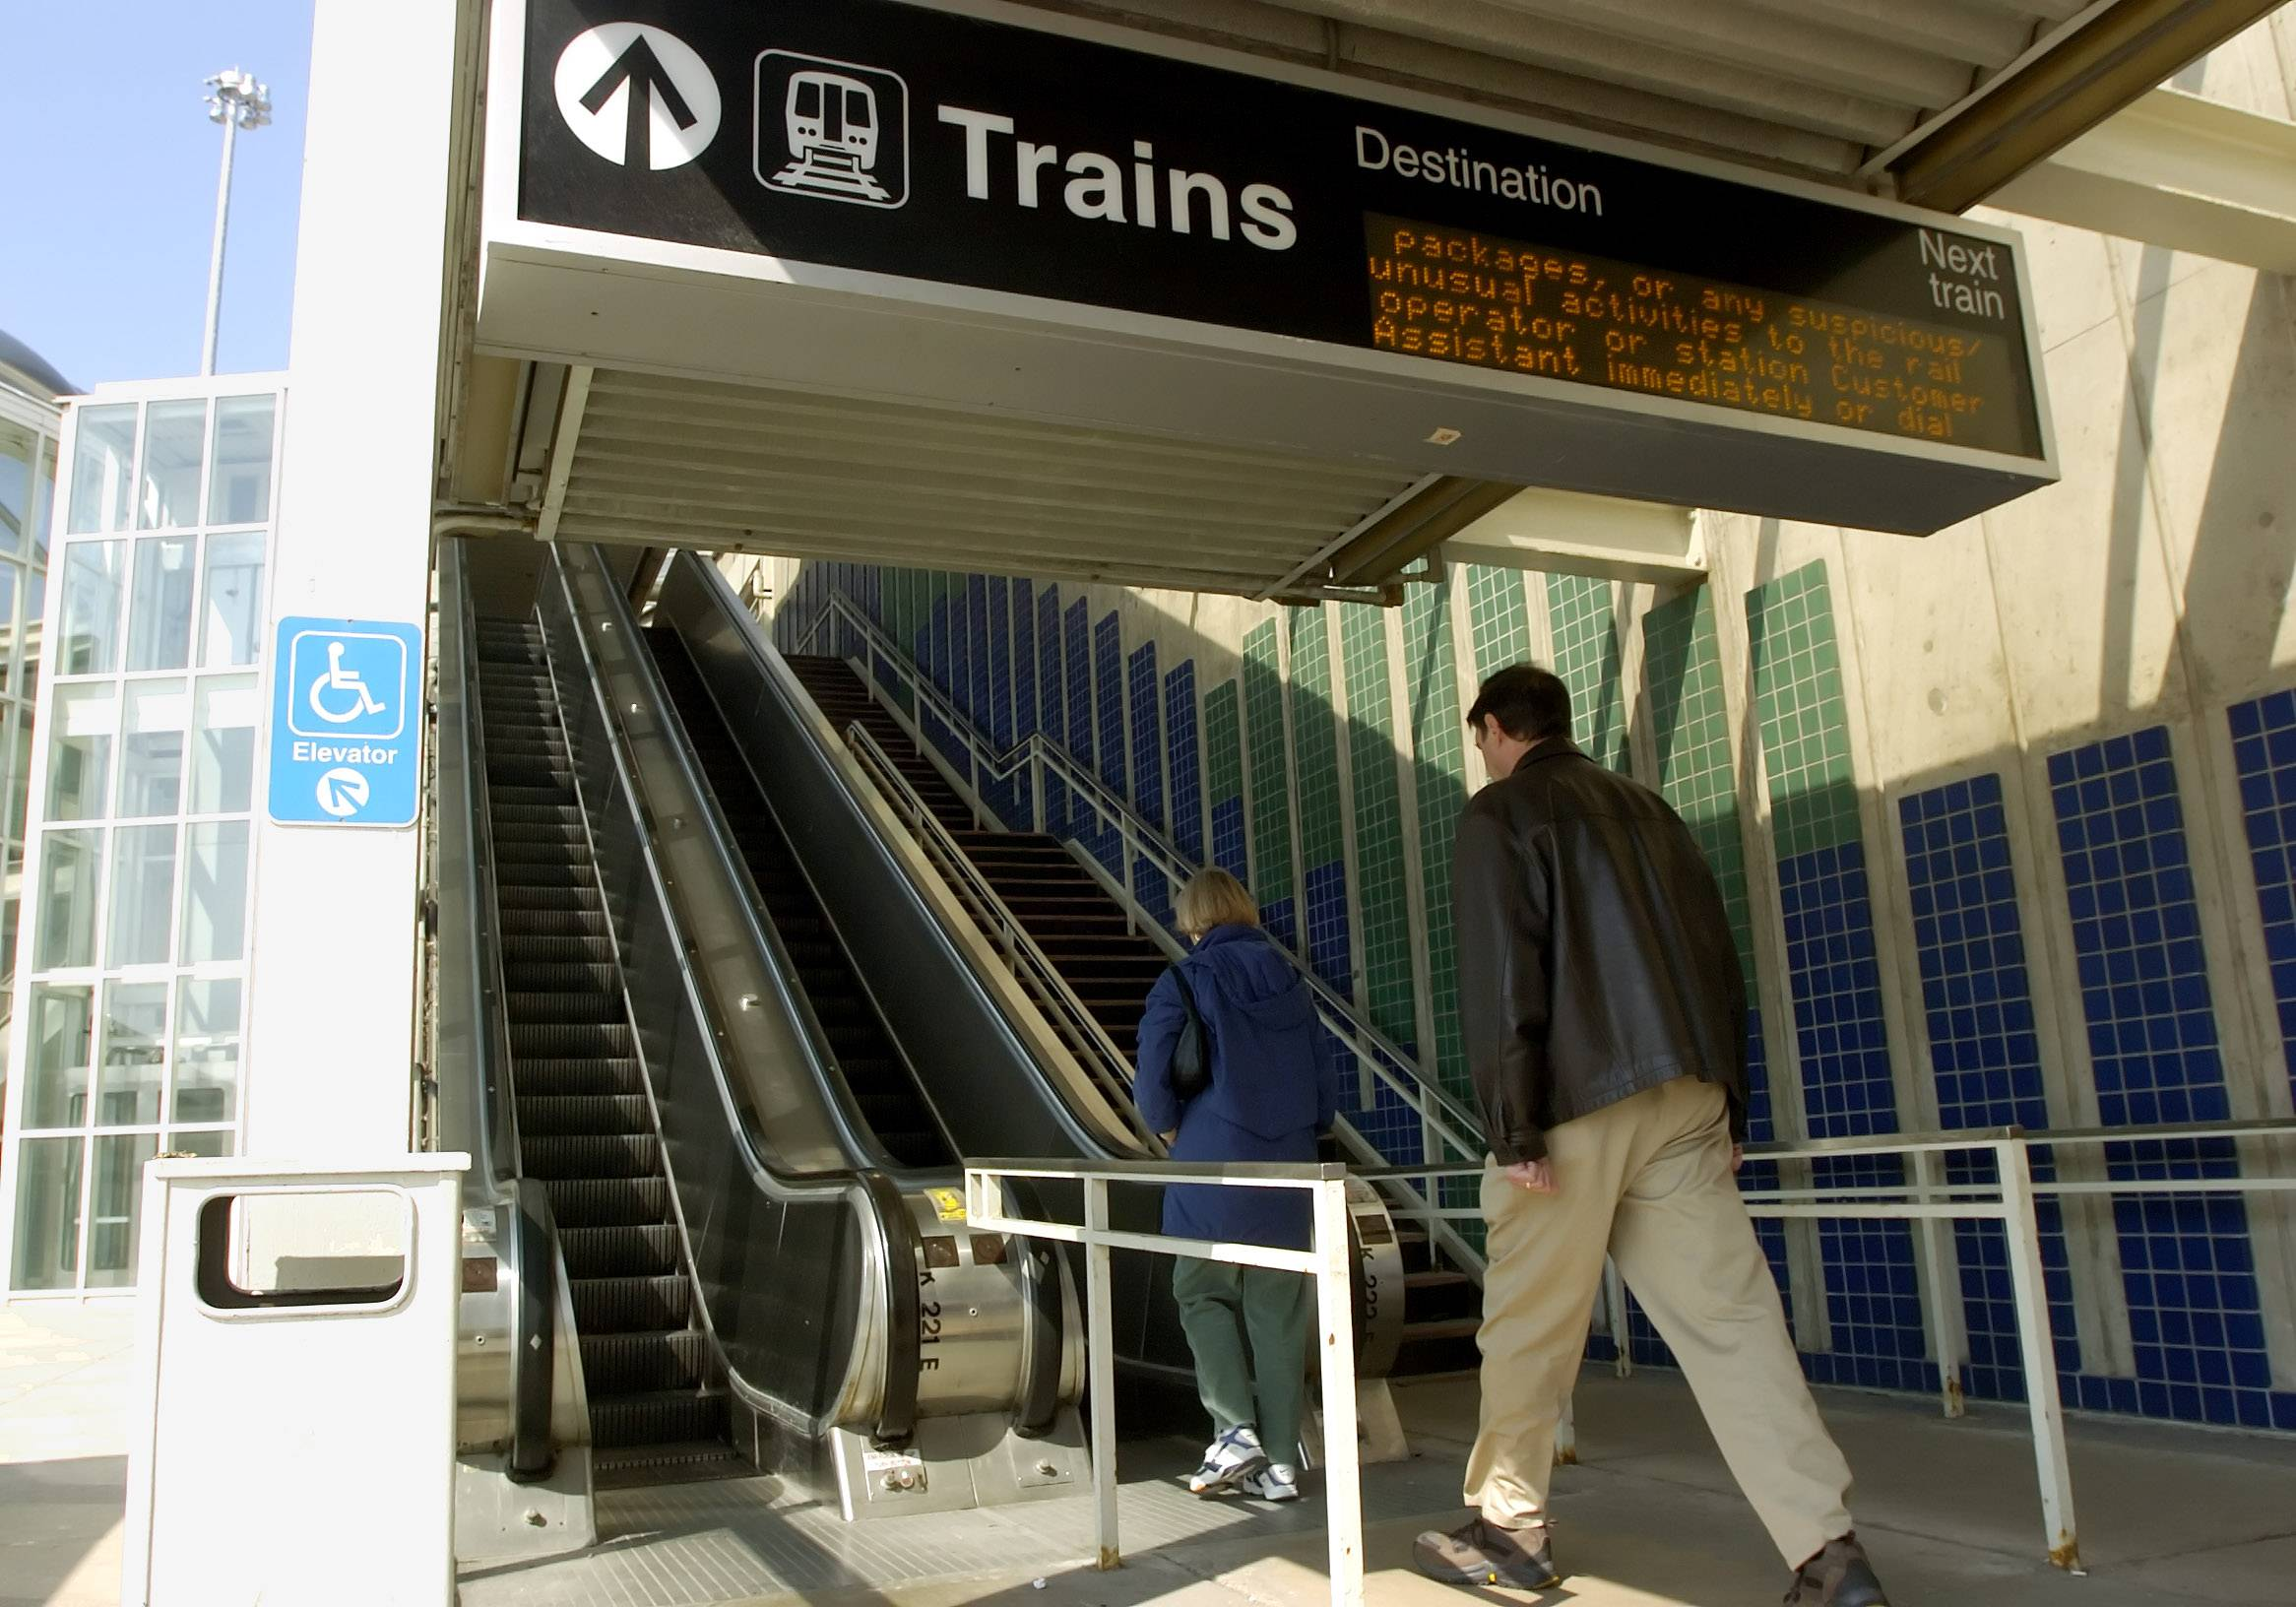 The CTA, Metra and Pace would merge and the Regional Transportation Authority would be eliminated under a recommendation by a task force appointed by Gov. Pat Quinn.